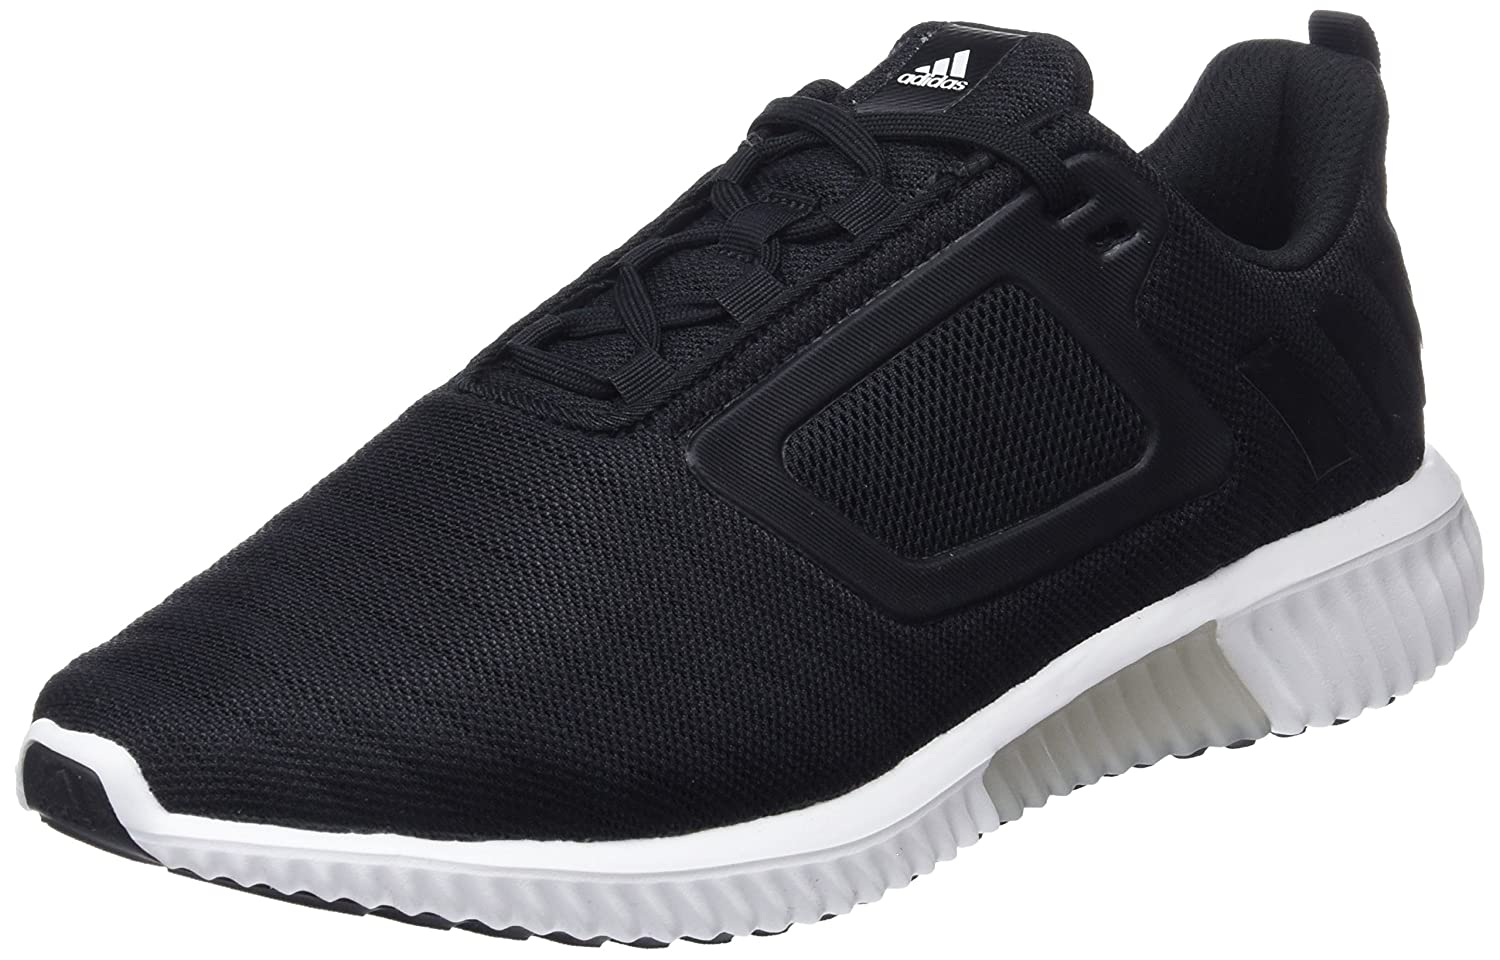 adidas Climacool Cm Chaussure Run Homme Noir Taille